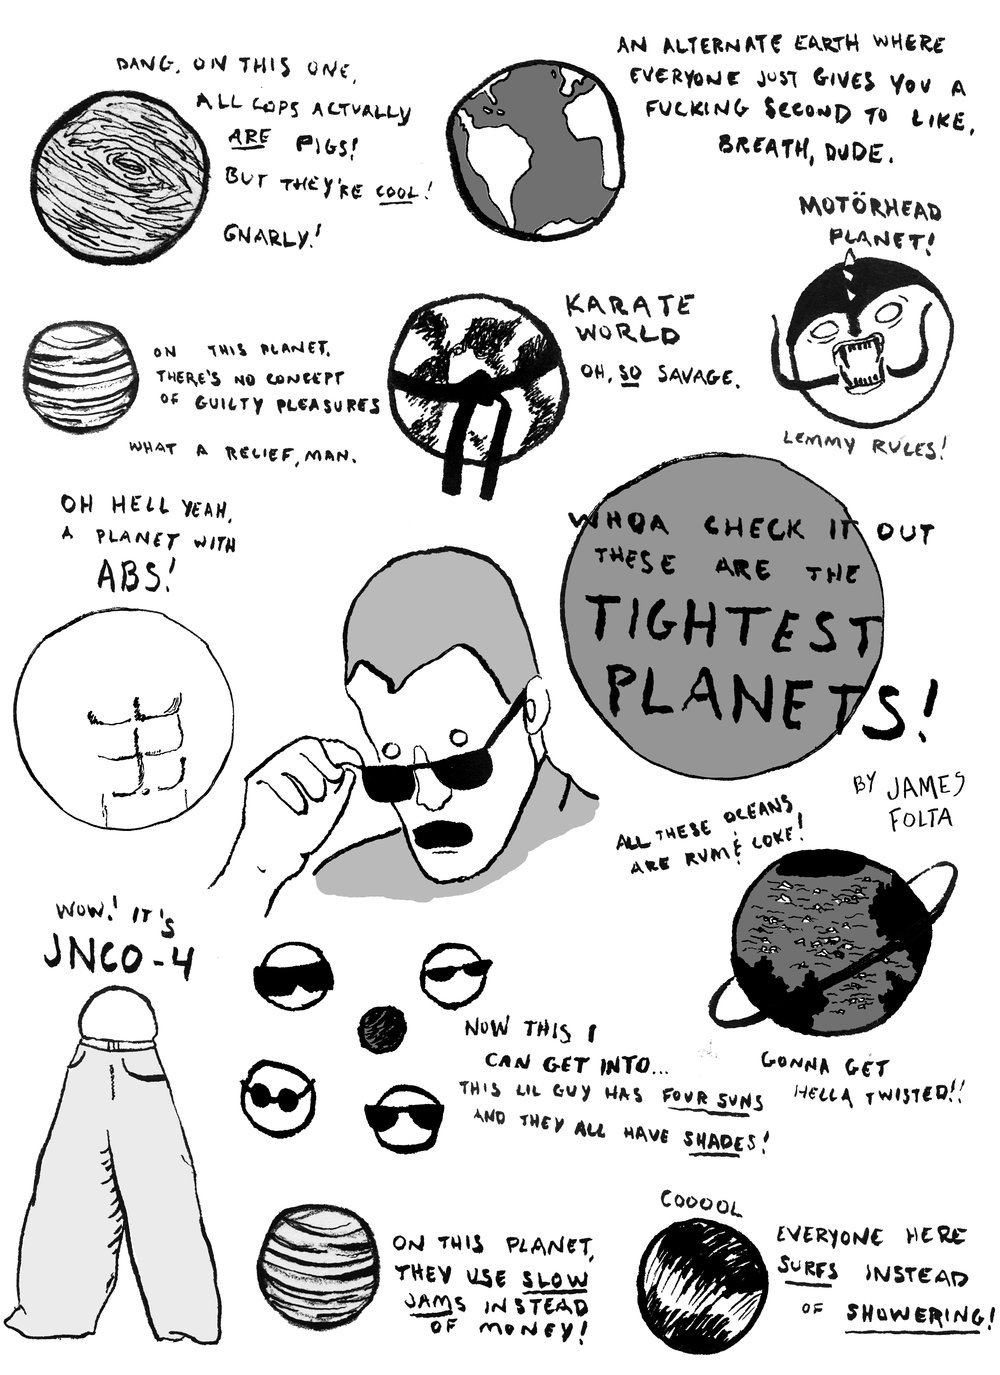 The Tightest Planets.jpg